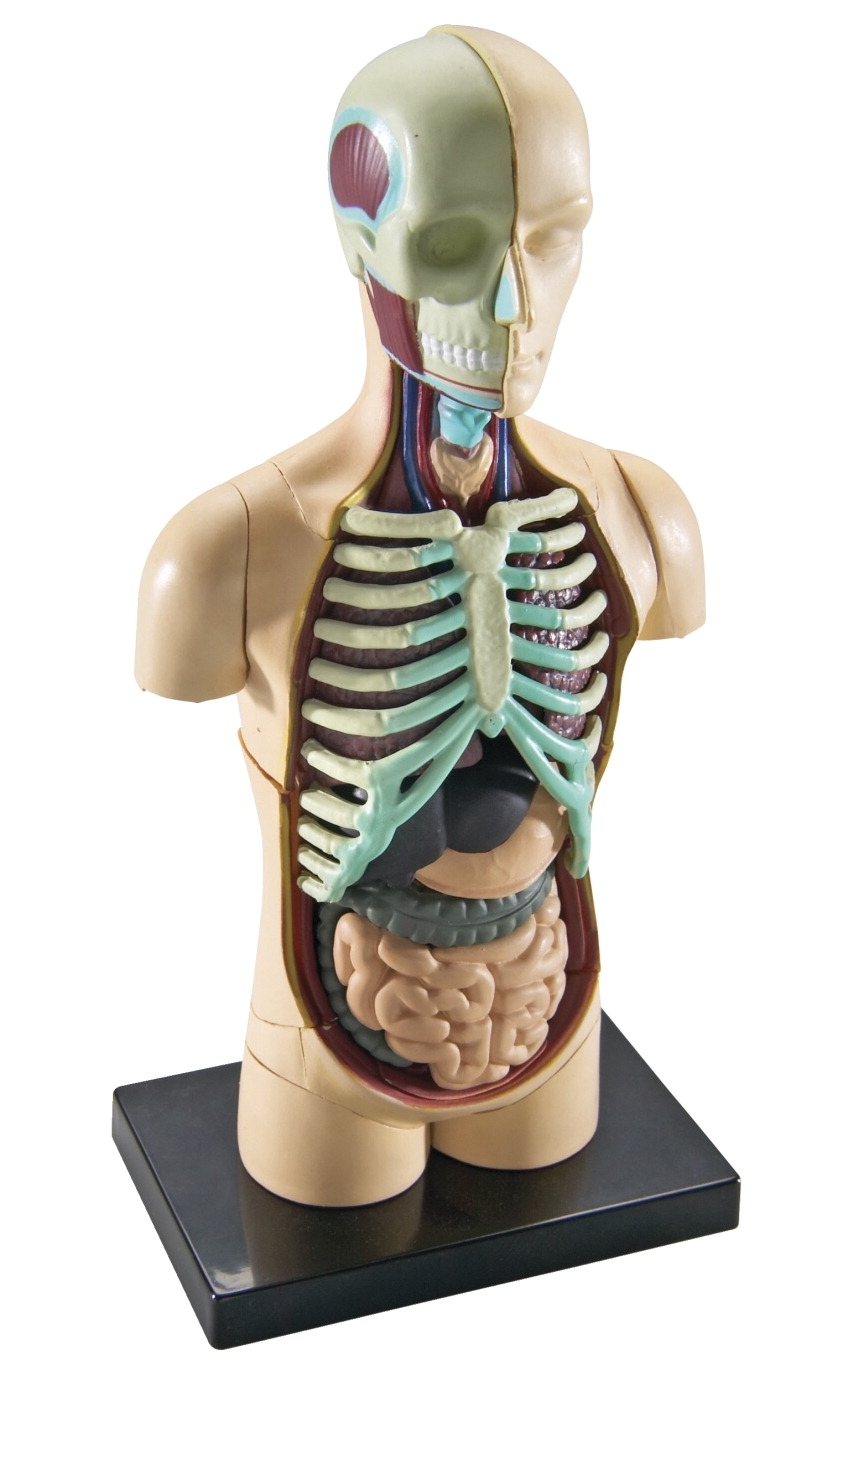 Learning: Science Biology Human Organ Models Human Torso Models - 1321190 - Learning Resources Human Body Anatomy Model 1321190